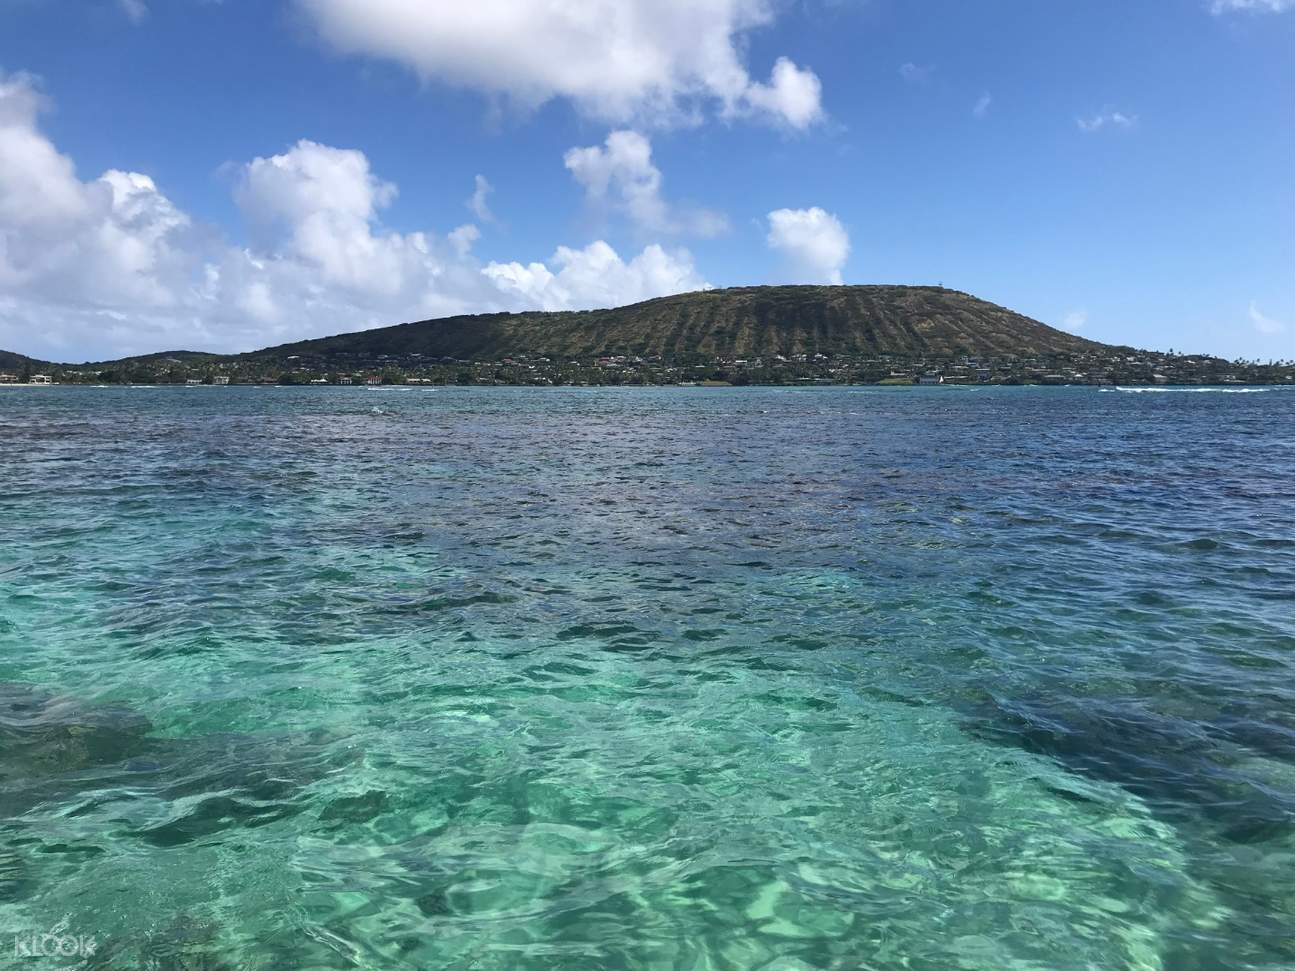 a view of Maunalua Bay's crystal clear waters and a crater